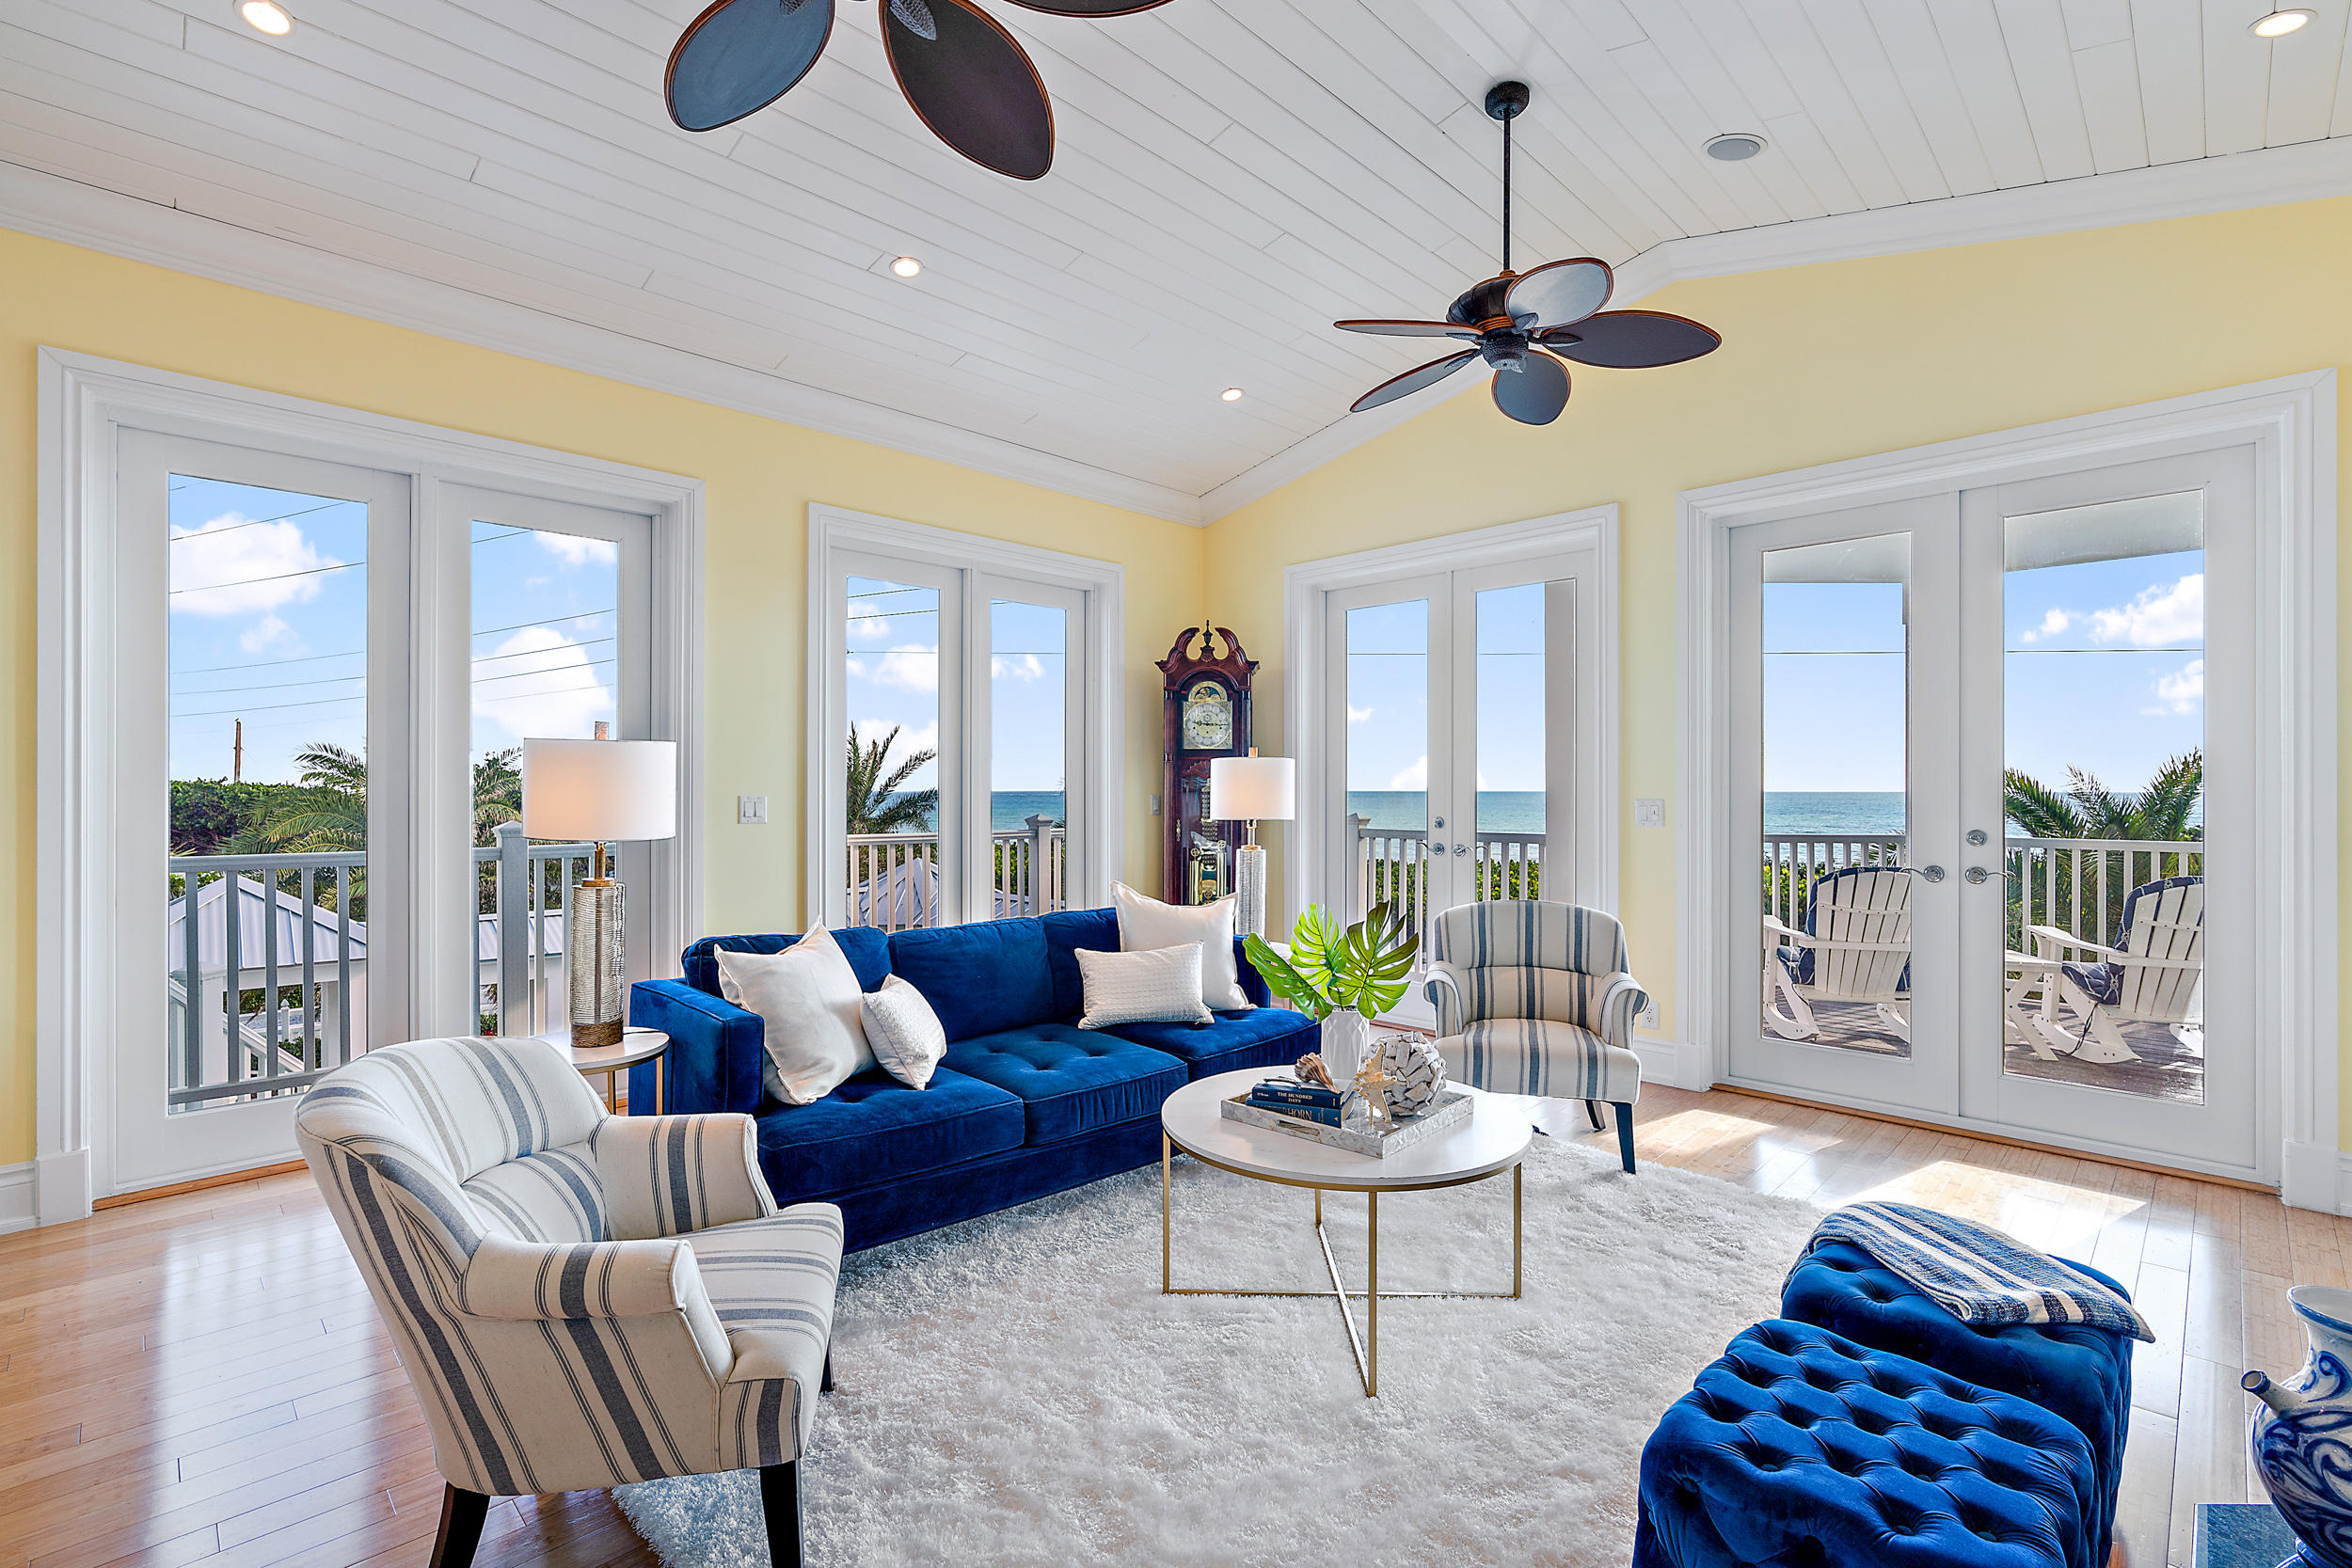 New Home for sale at 1061 Ocean Drive in Juno Beach